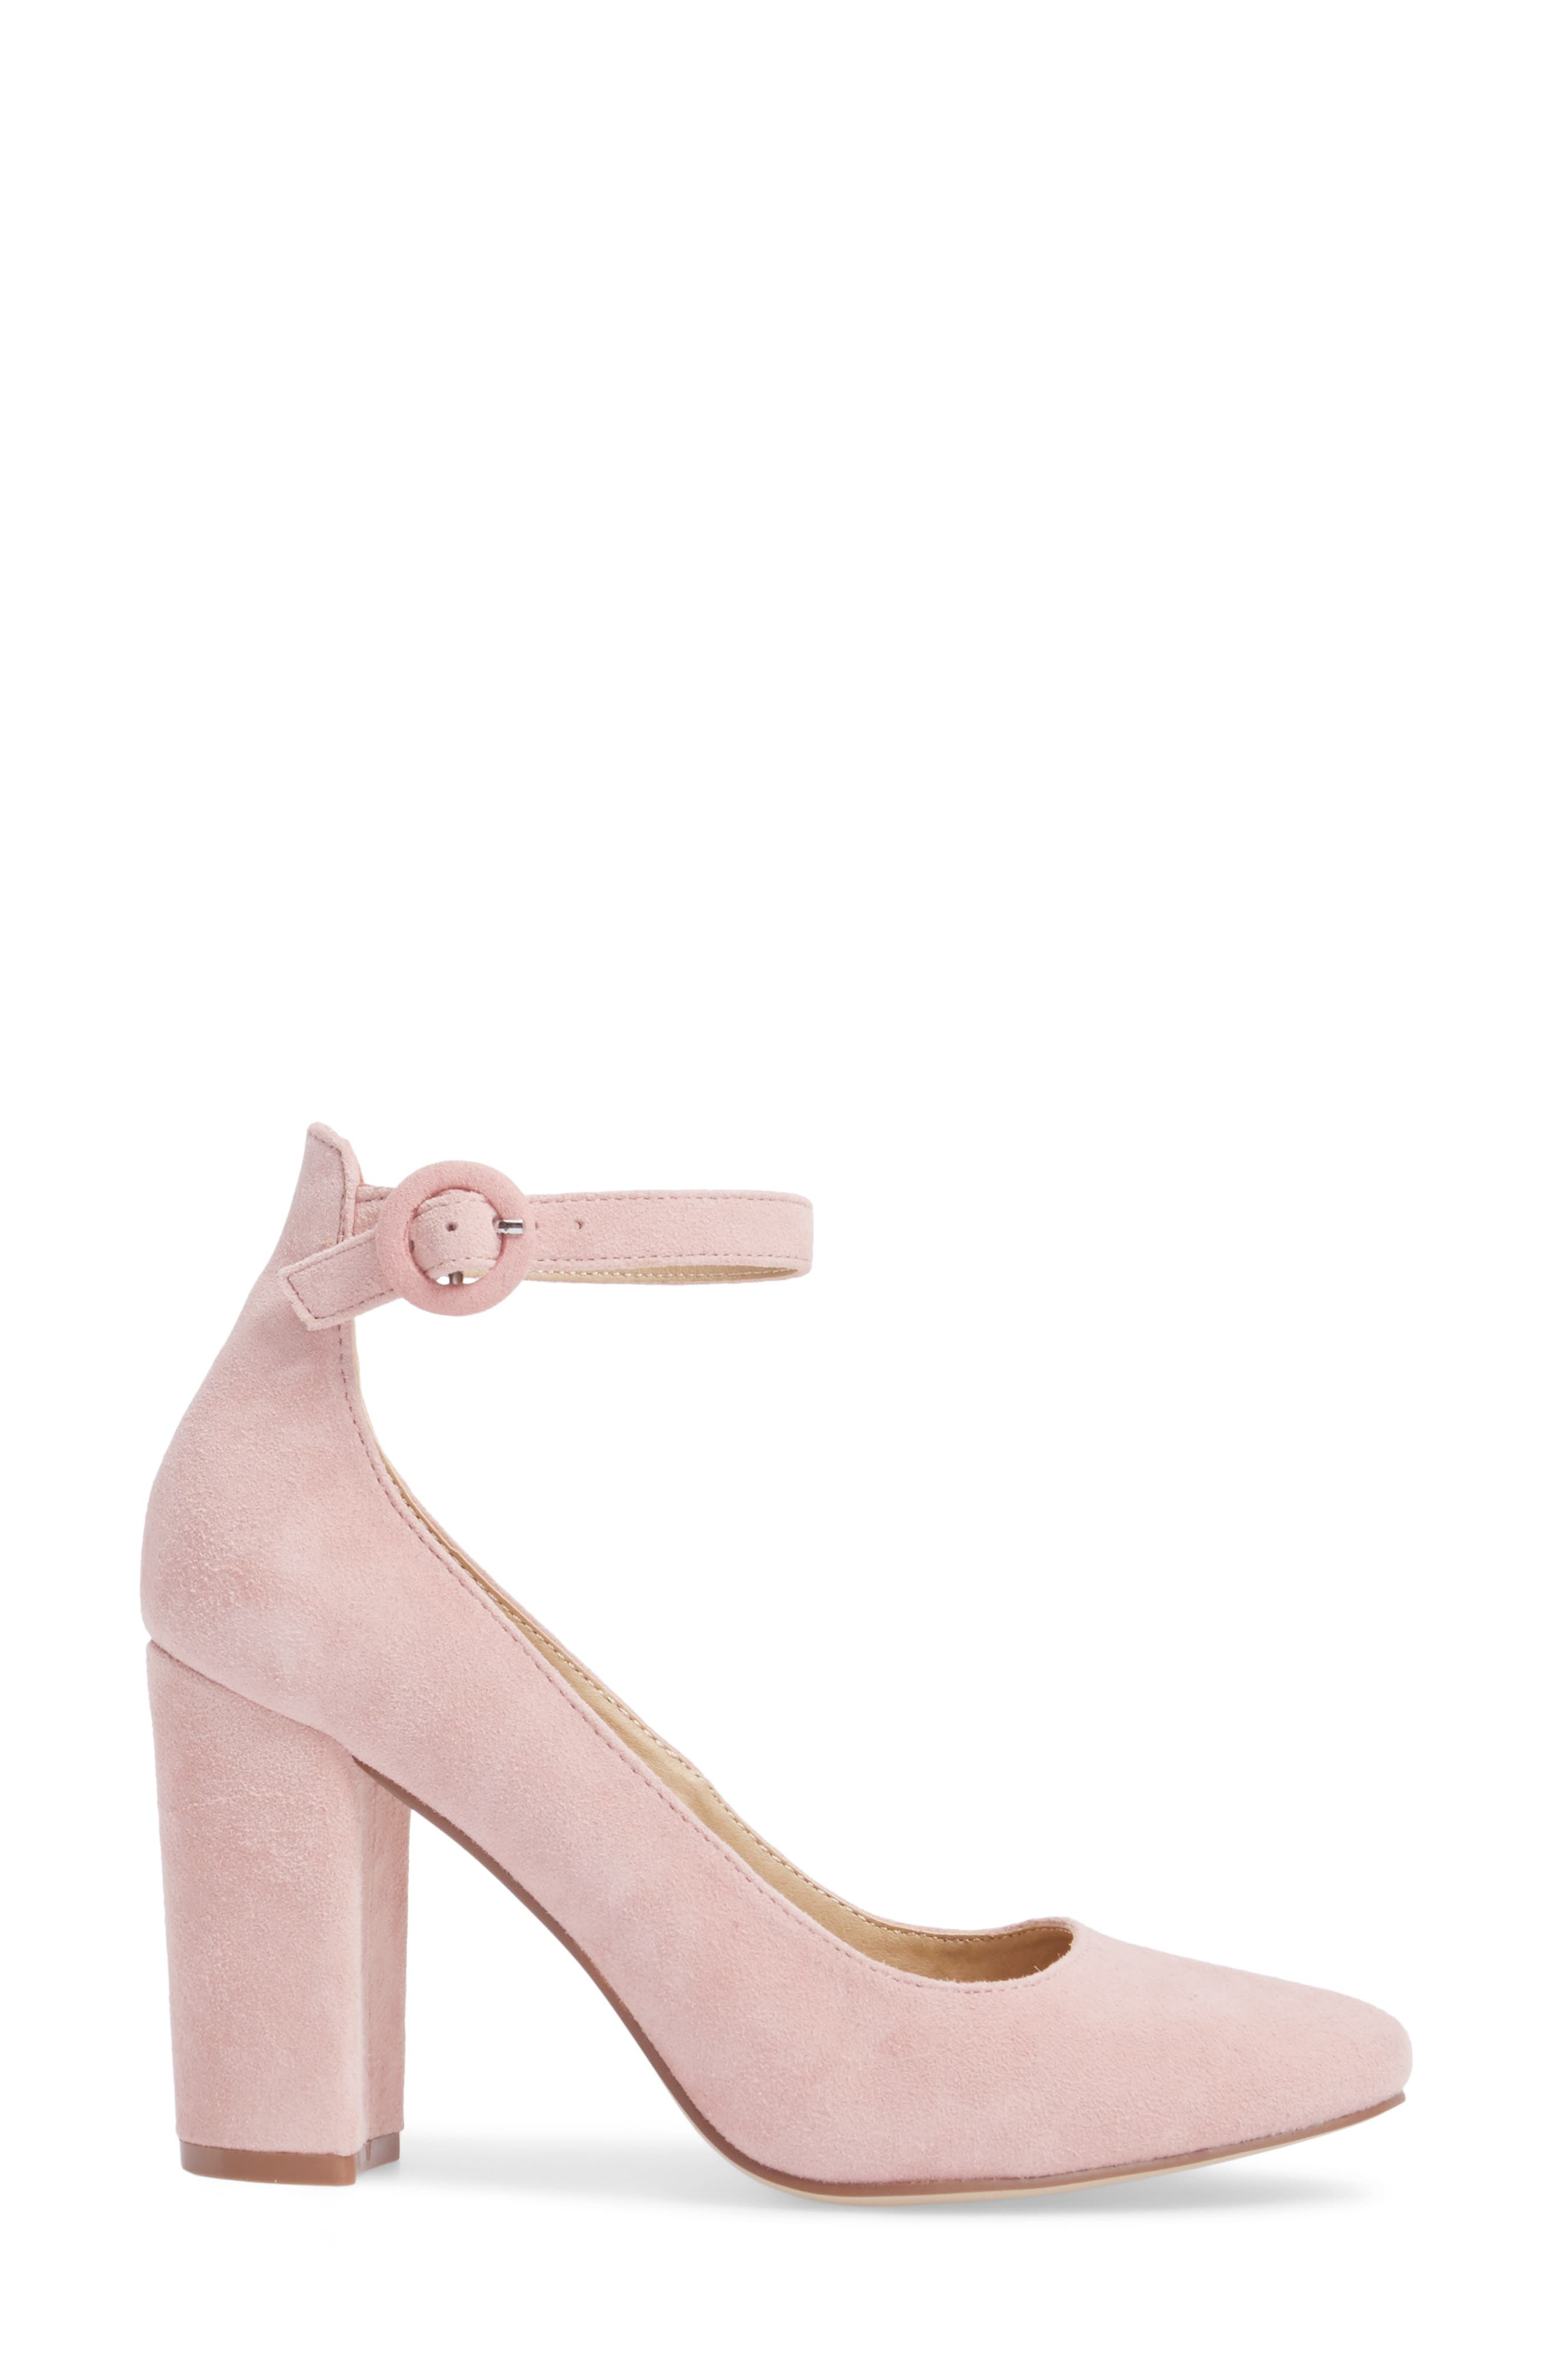 Veronika Pump,                             Alternate thumbnail 3, color,                             Rose Suede